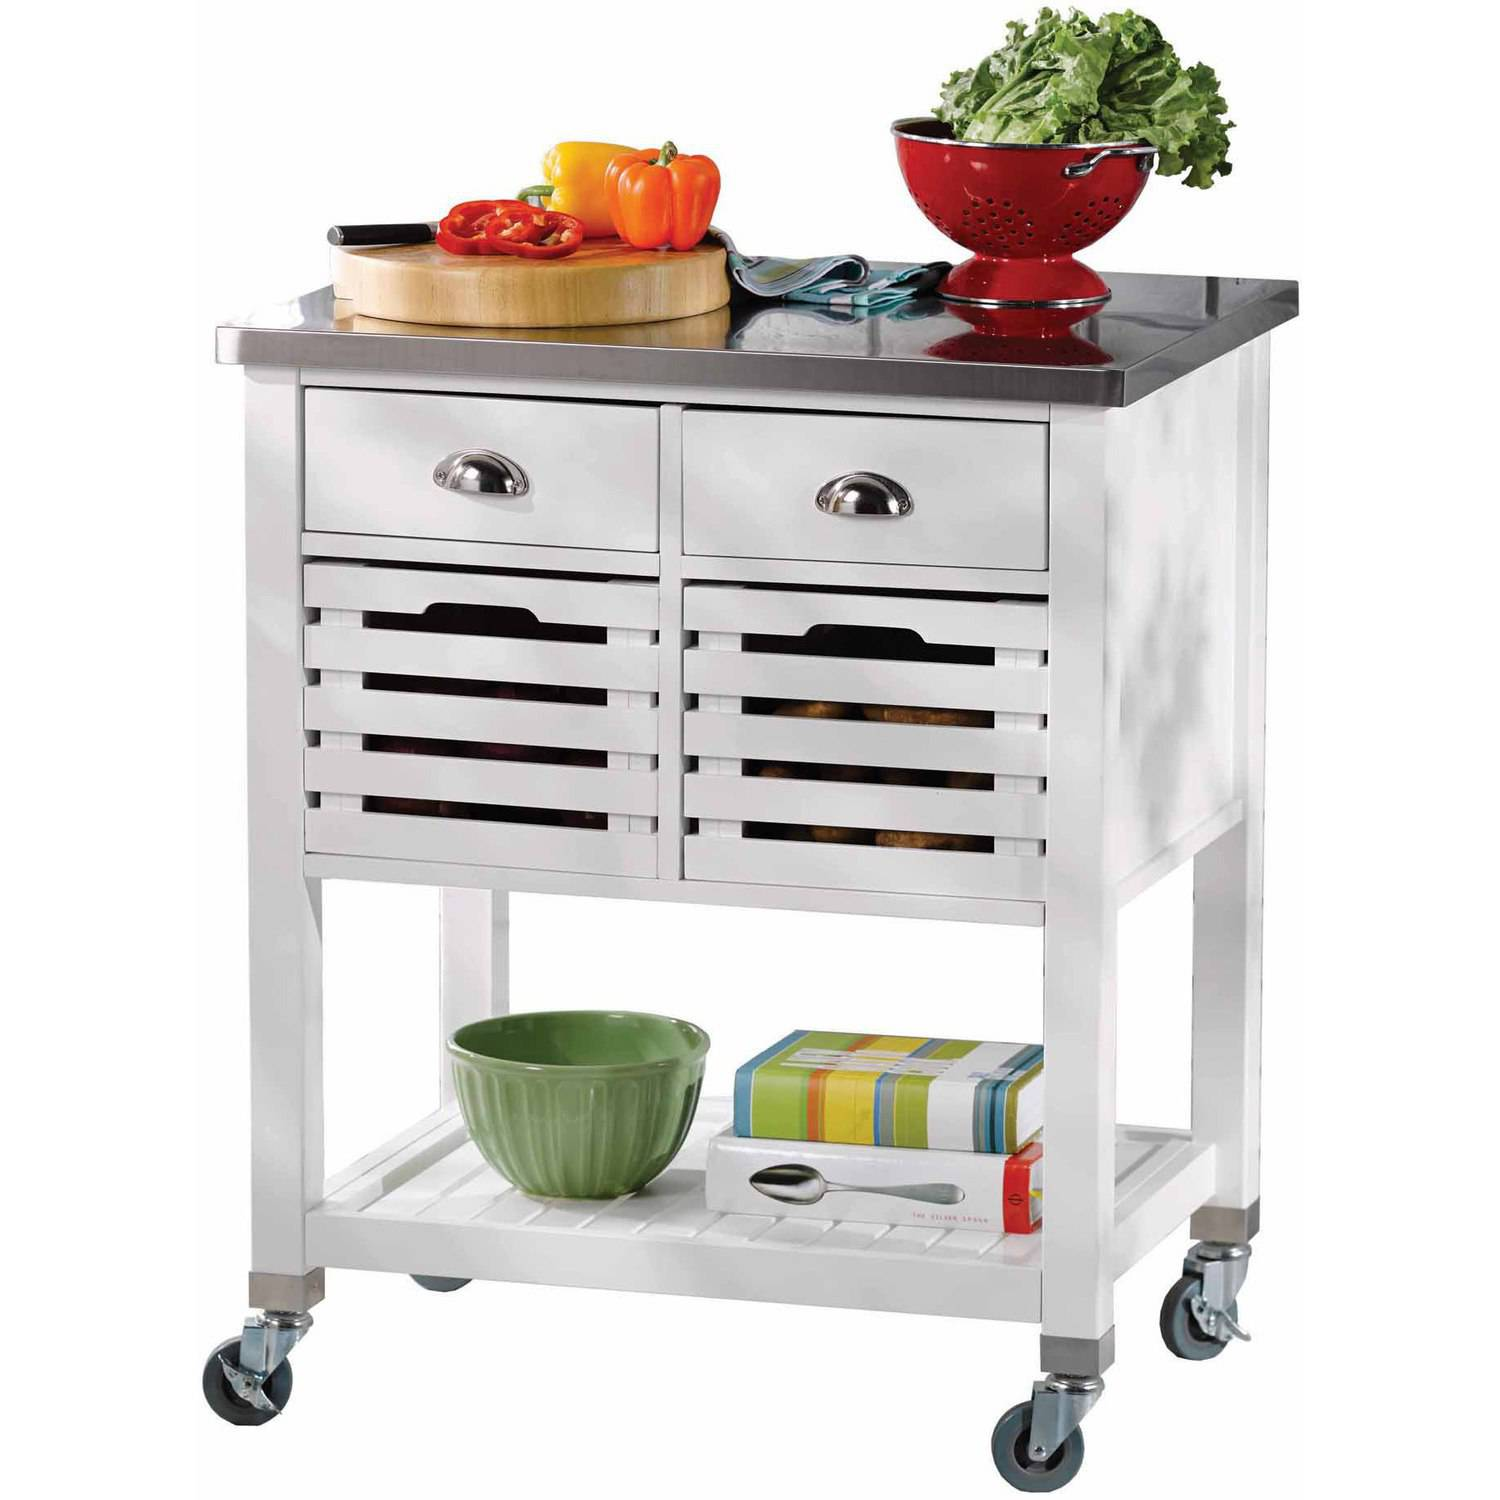 Linon Robbin Wood Kitchen Cart With Stainless Steel Top, 36 Inches Tall    Walmart.com